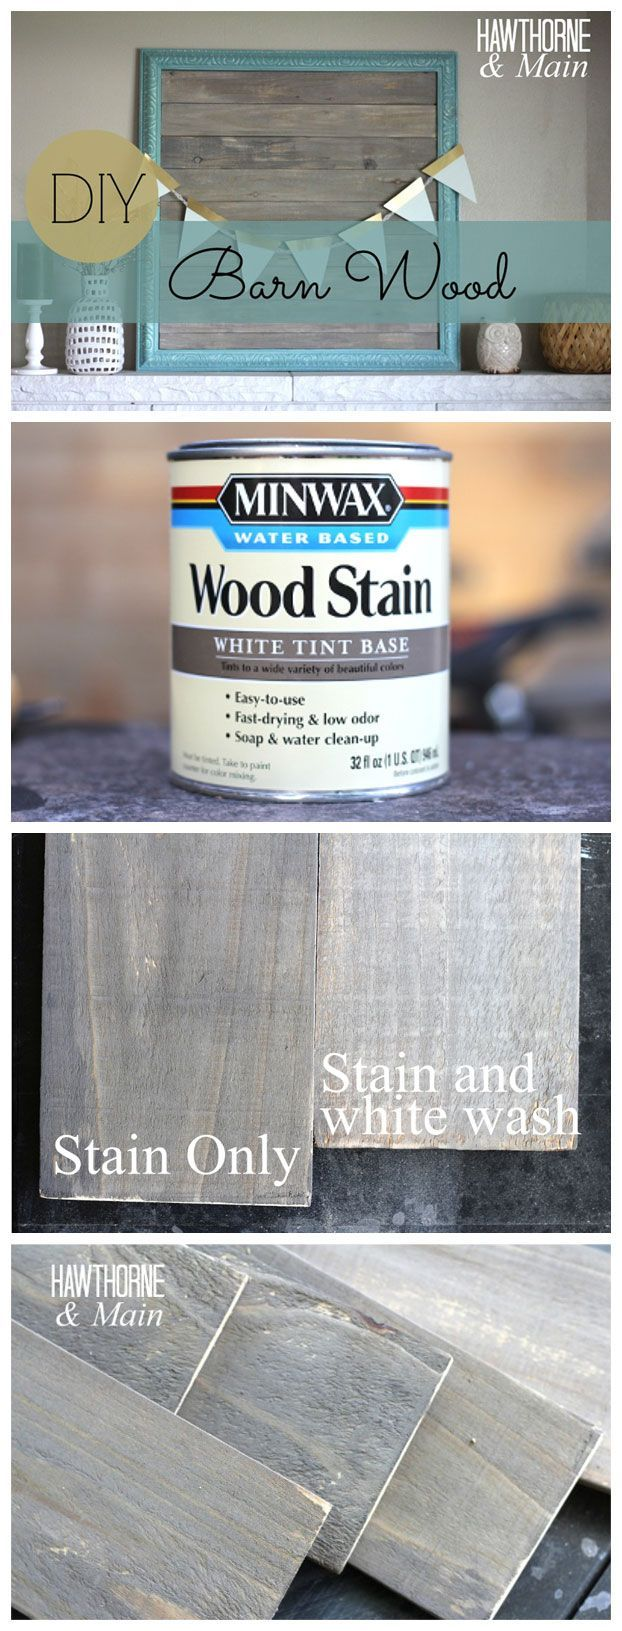 Can i stain over stain - Diy Barn Wood She Stained A Piece Of Scrap Board With Minwax White Tint Base Wood Stain In Slate And Realized It Was A Bit Too Dark For Her Liking So